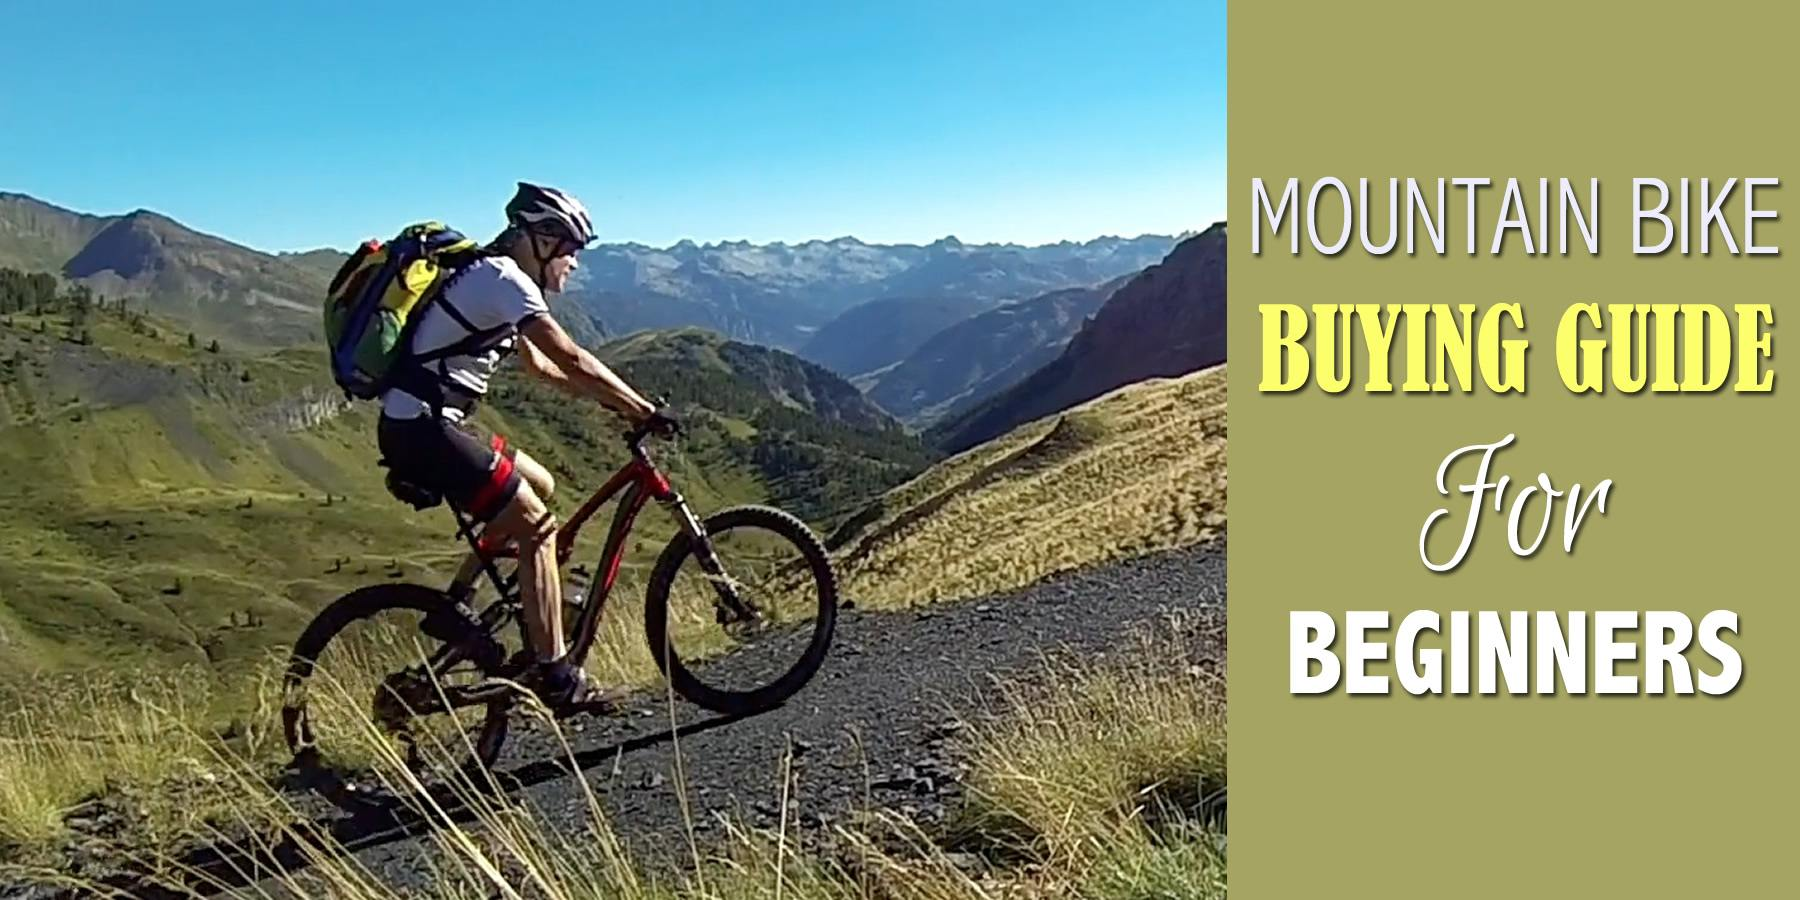 Mountain Bike Buying Guide For Beginners – Step By Step Guide From Experts